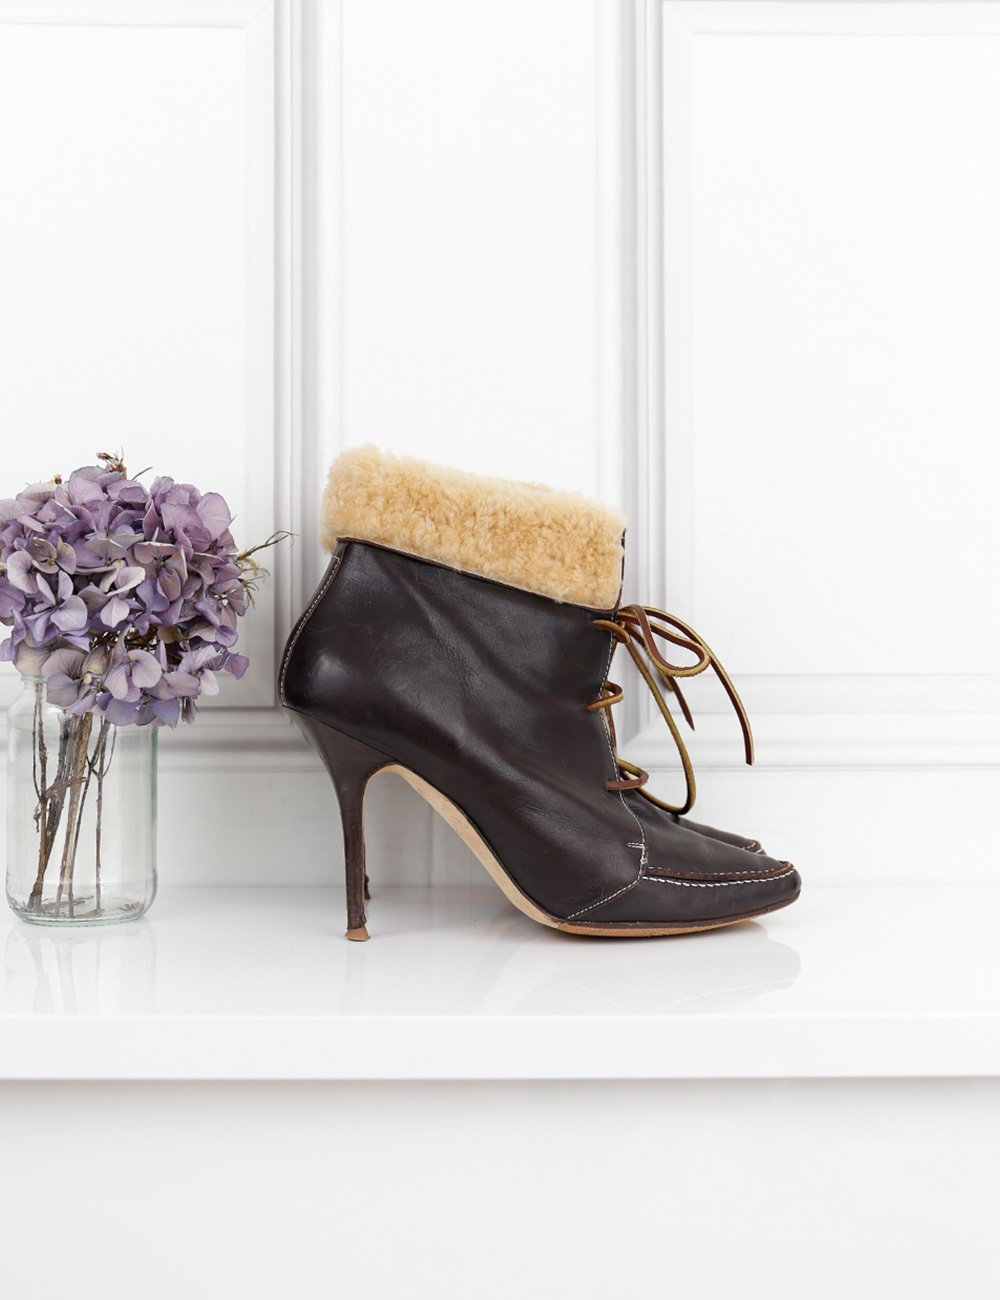 MANOLO BLAHNIK SHOES 7.5UK-40.5IT-41.5FR / Brown MANOLO BLAHNIK Heels ankle boots